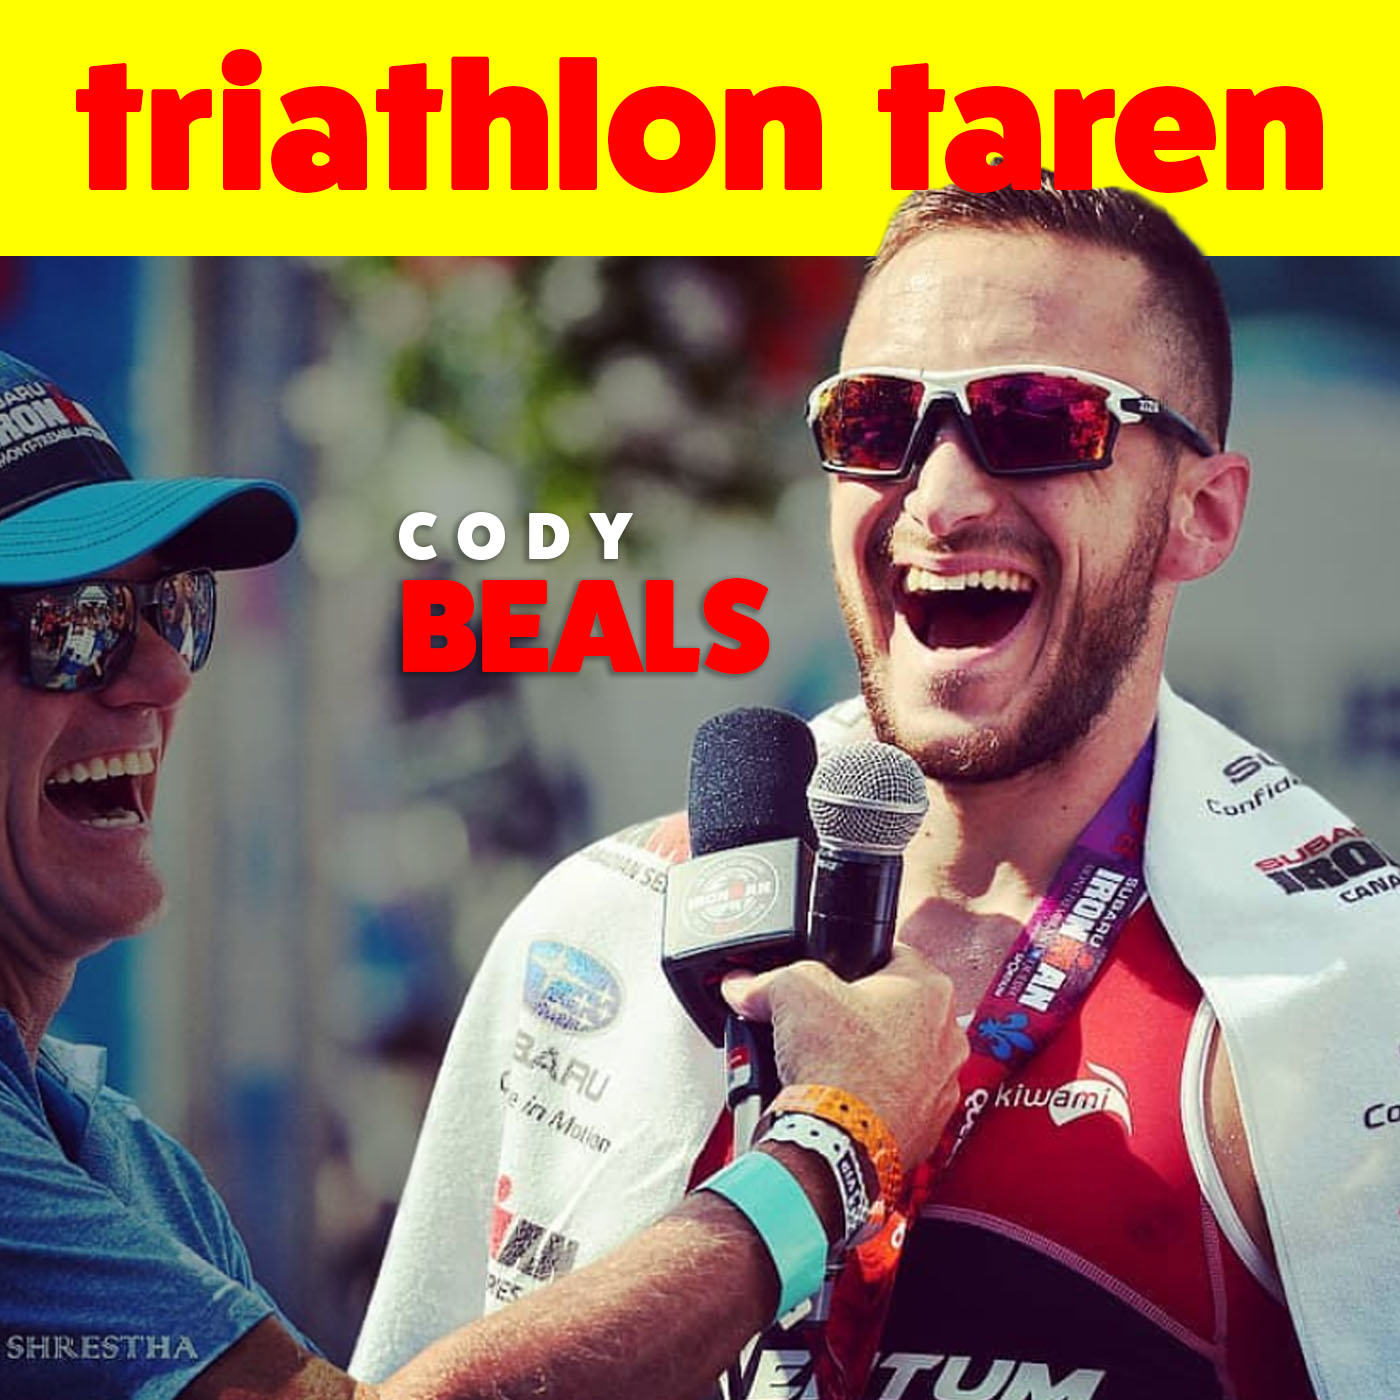 Cody Beals | Winner of IM Mont Tremblant & IM Chattanooga